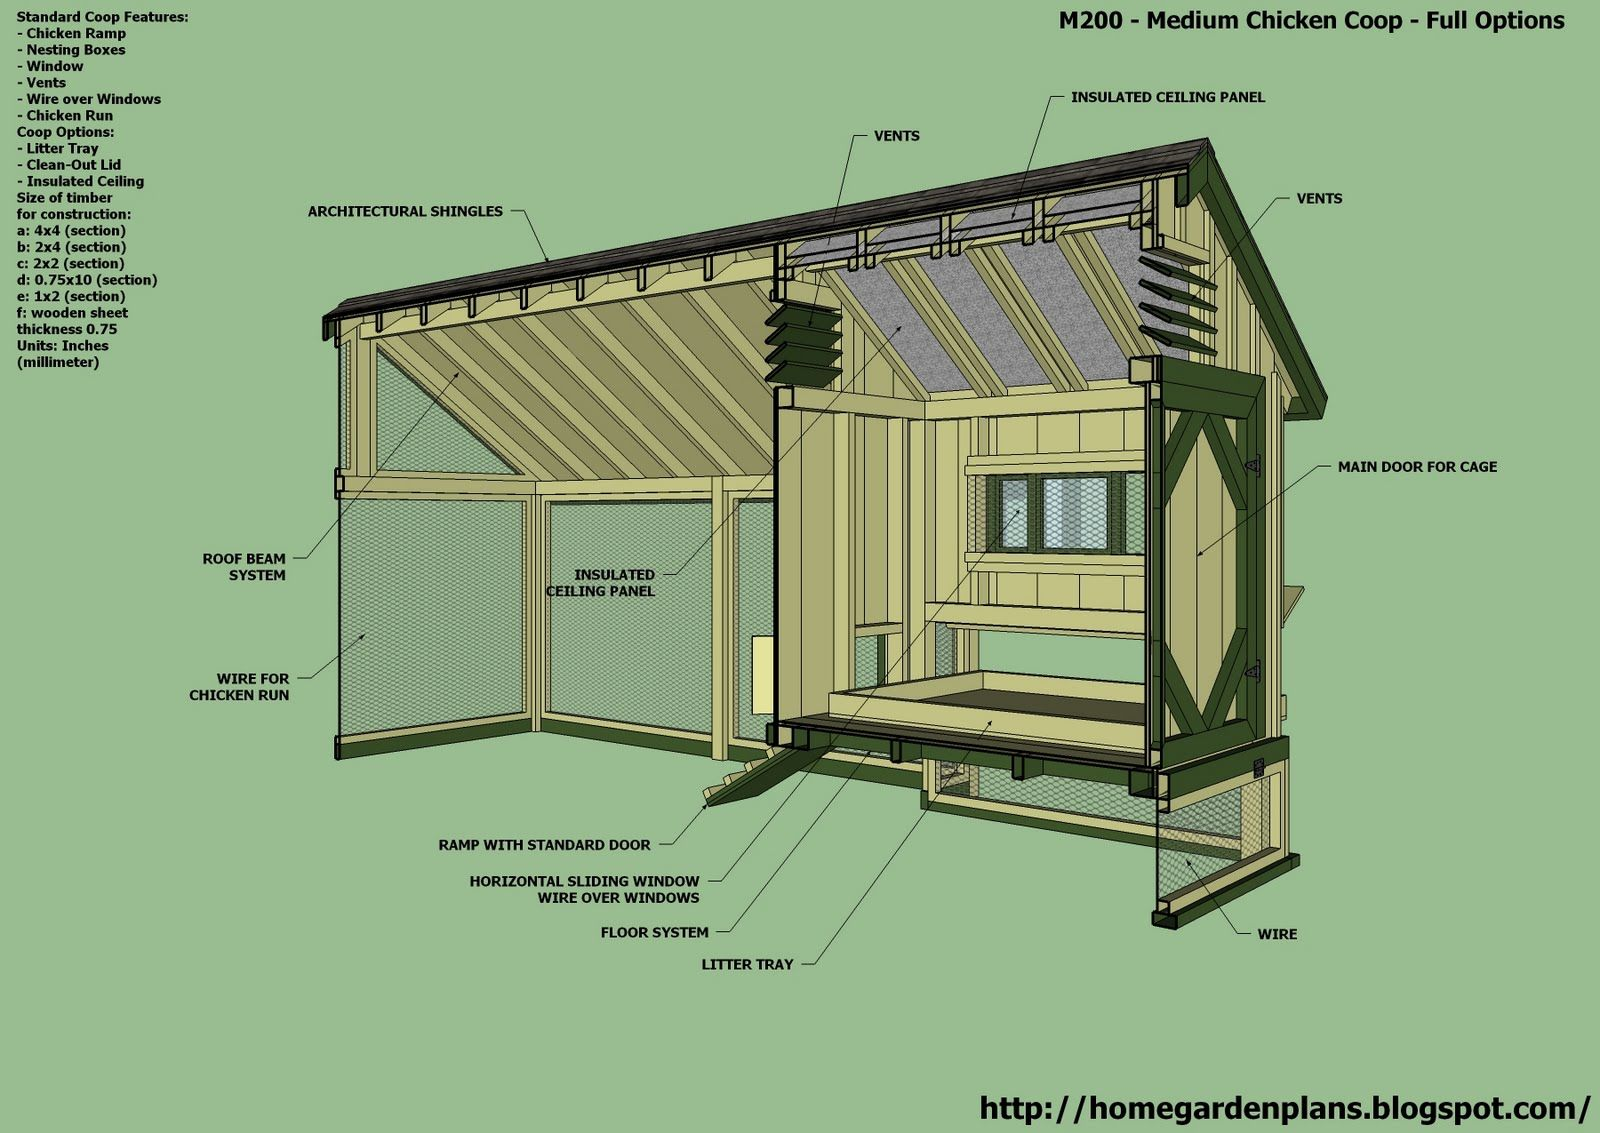 Home garden plans m200 perfect options backyard for Homegardendesignplan